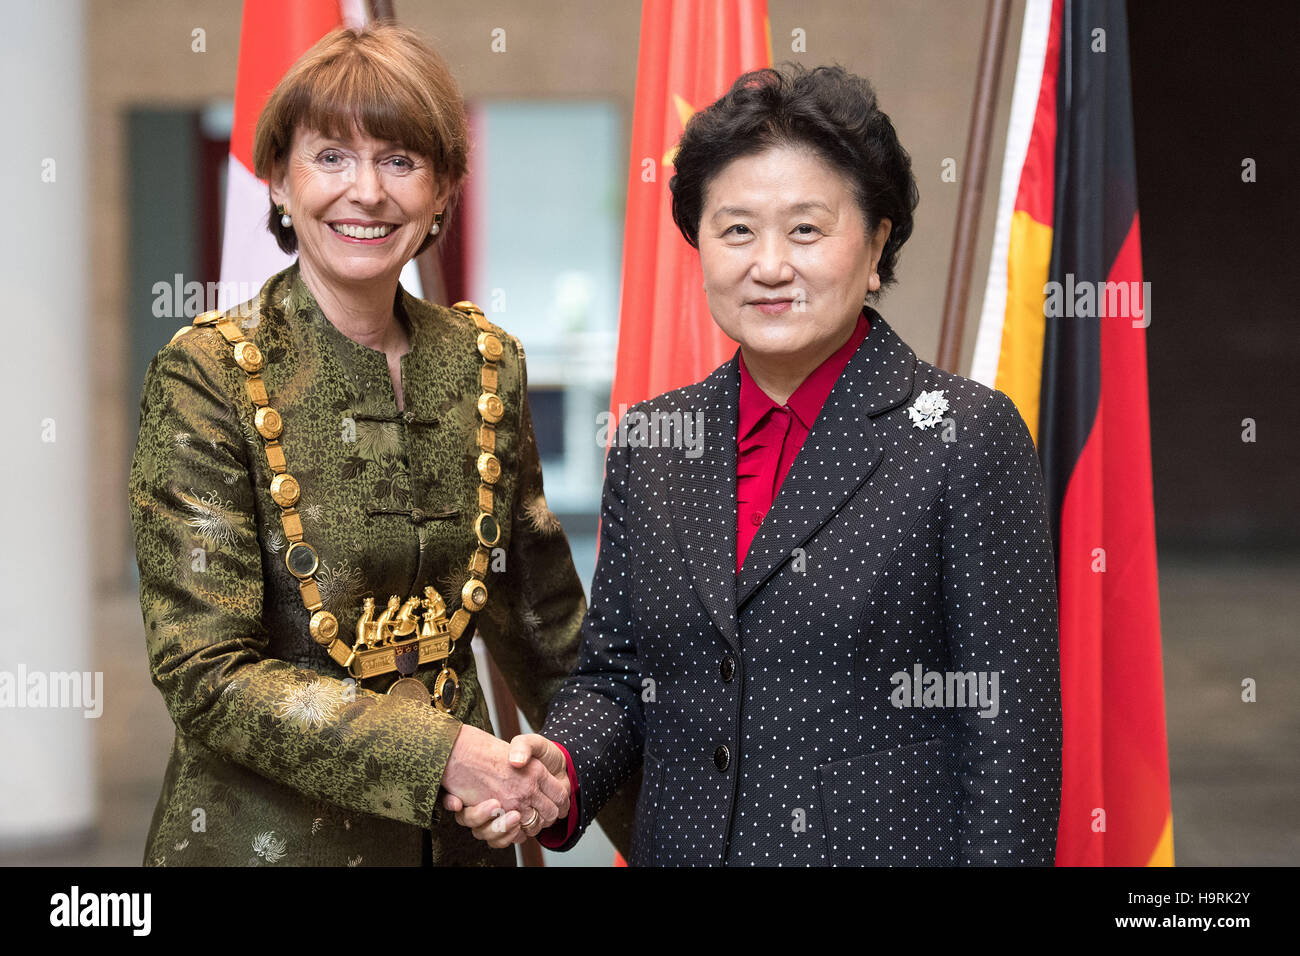 Colonge, Germany. 26th Nov, 2016. The mayor of Cologne Henriette Reker (L) welcomes the Chinese vice premier Liu - Stock Image